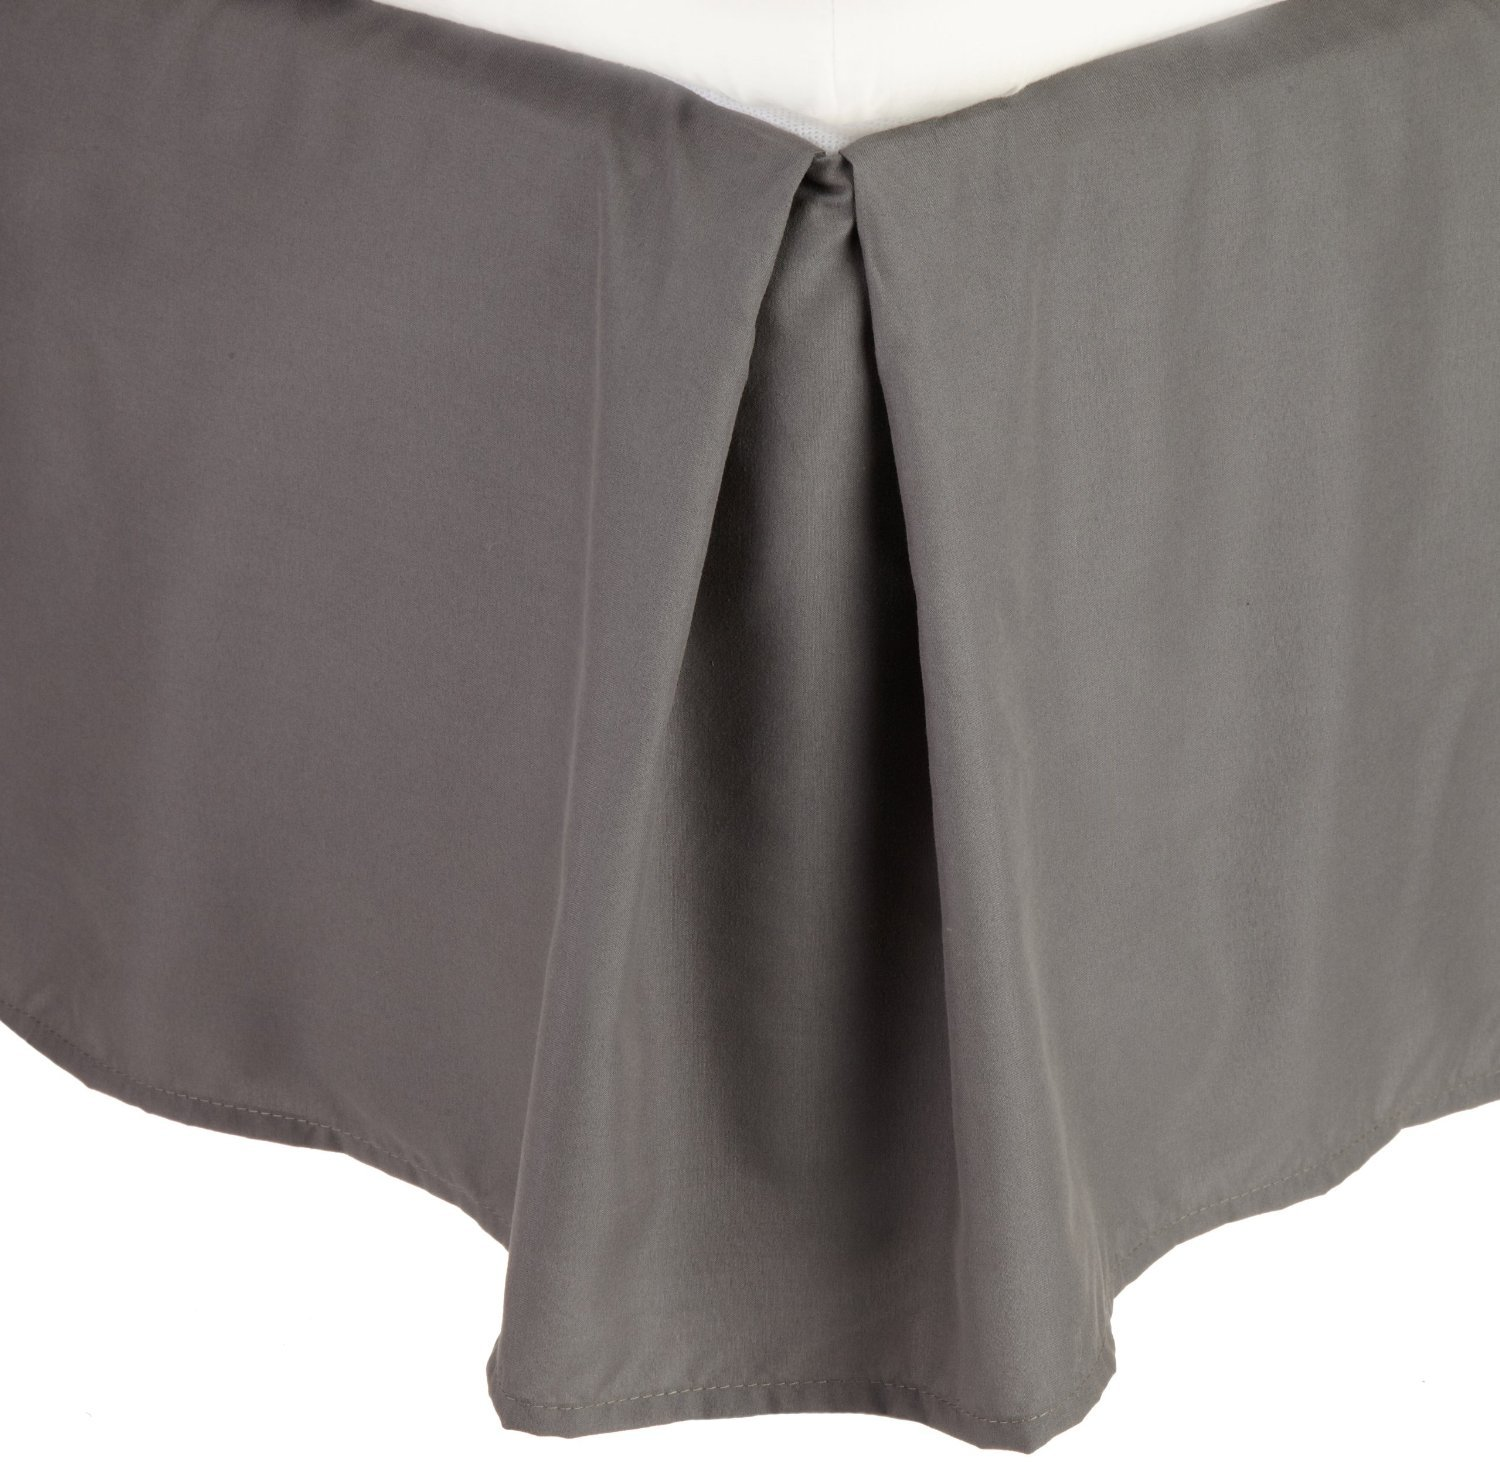 Rust All Sizes and Colors Pleated Tailored 14 Drop Elegant Comfort 100 GSM Bed Skirt// Dust Ruffles WRINKLE-FREE Egyptian Quality SOLID Queen